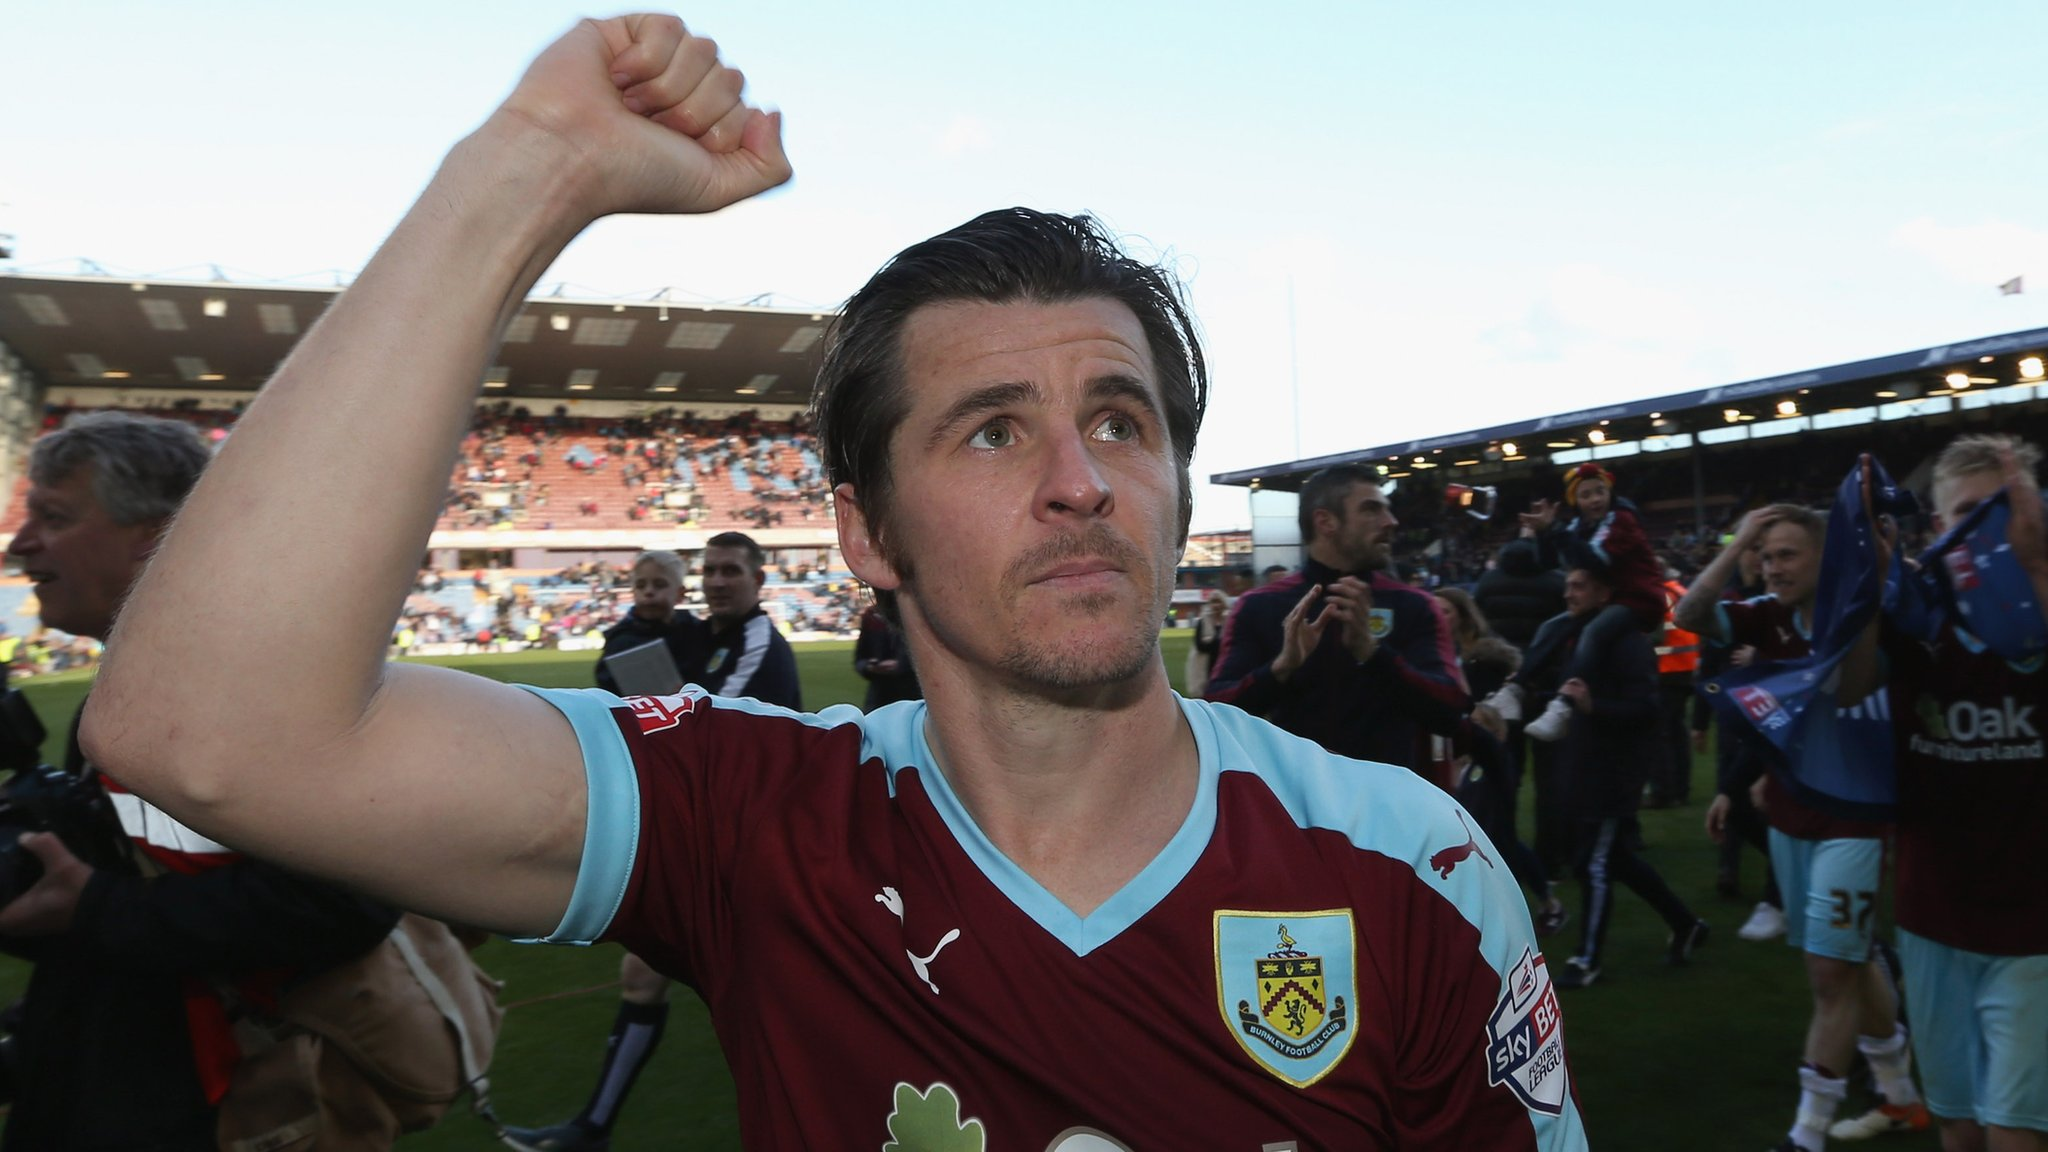 Joey Barton: Fleetwood Town announce ex-Burnley midfielder as head coach